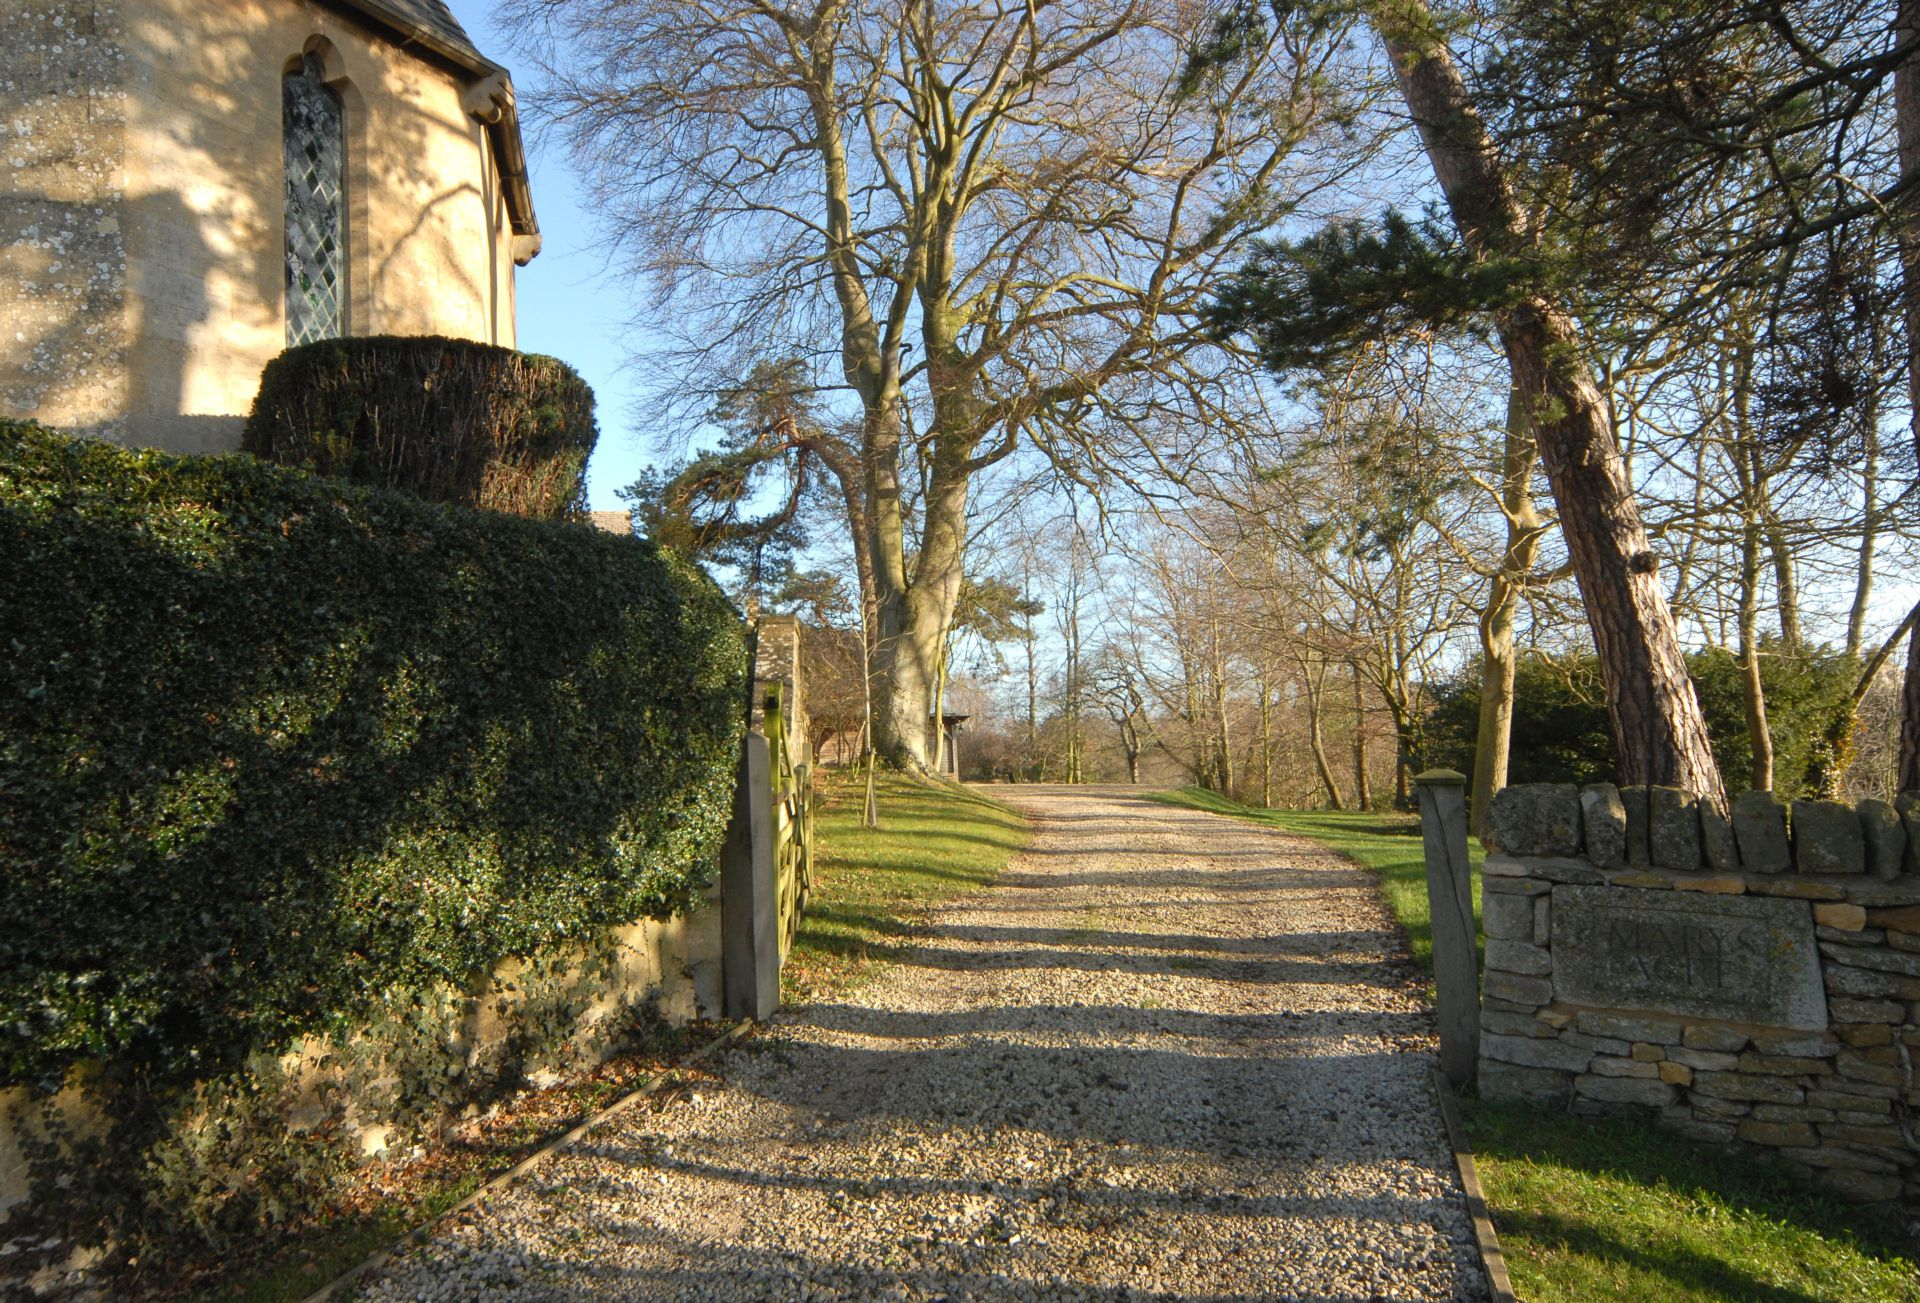 The driveway to the house